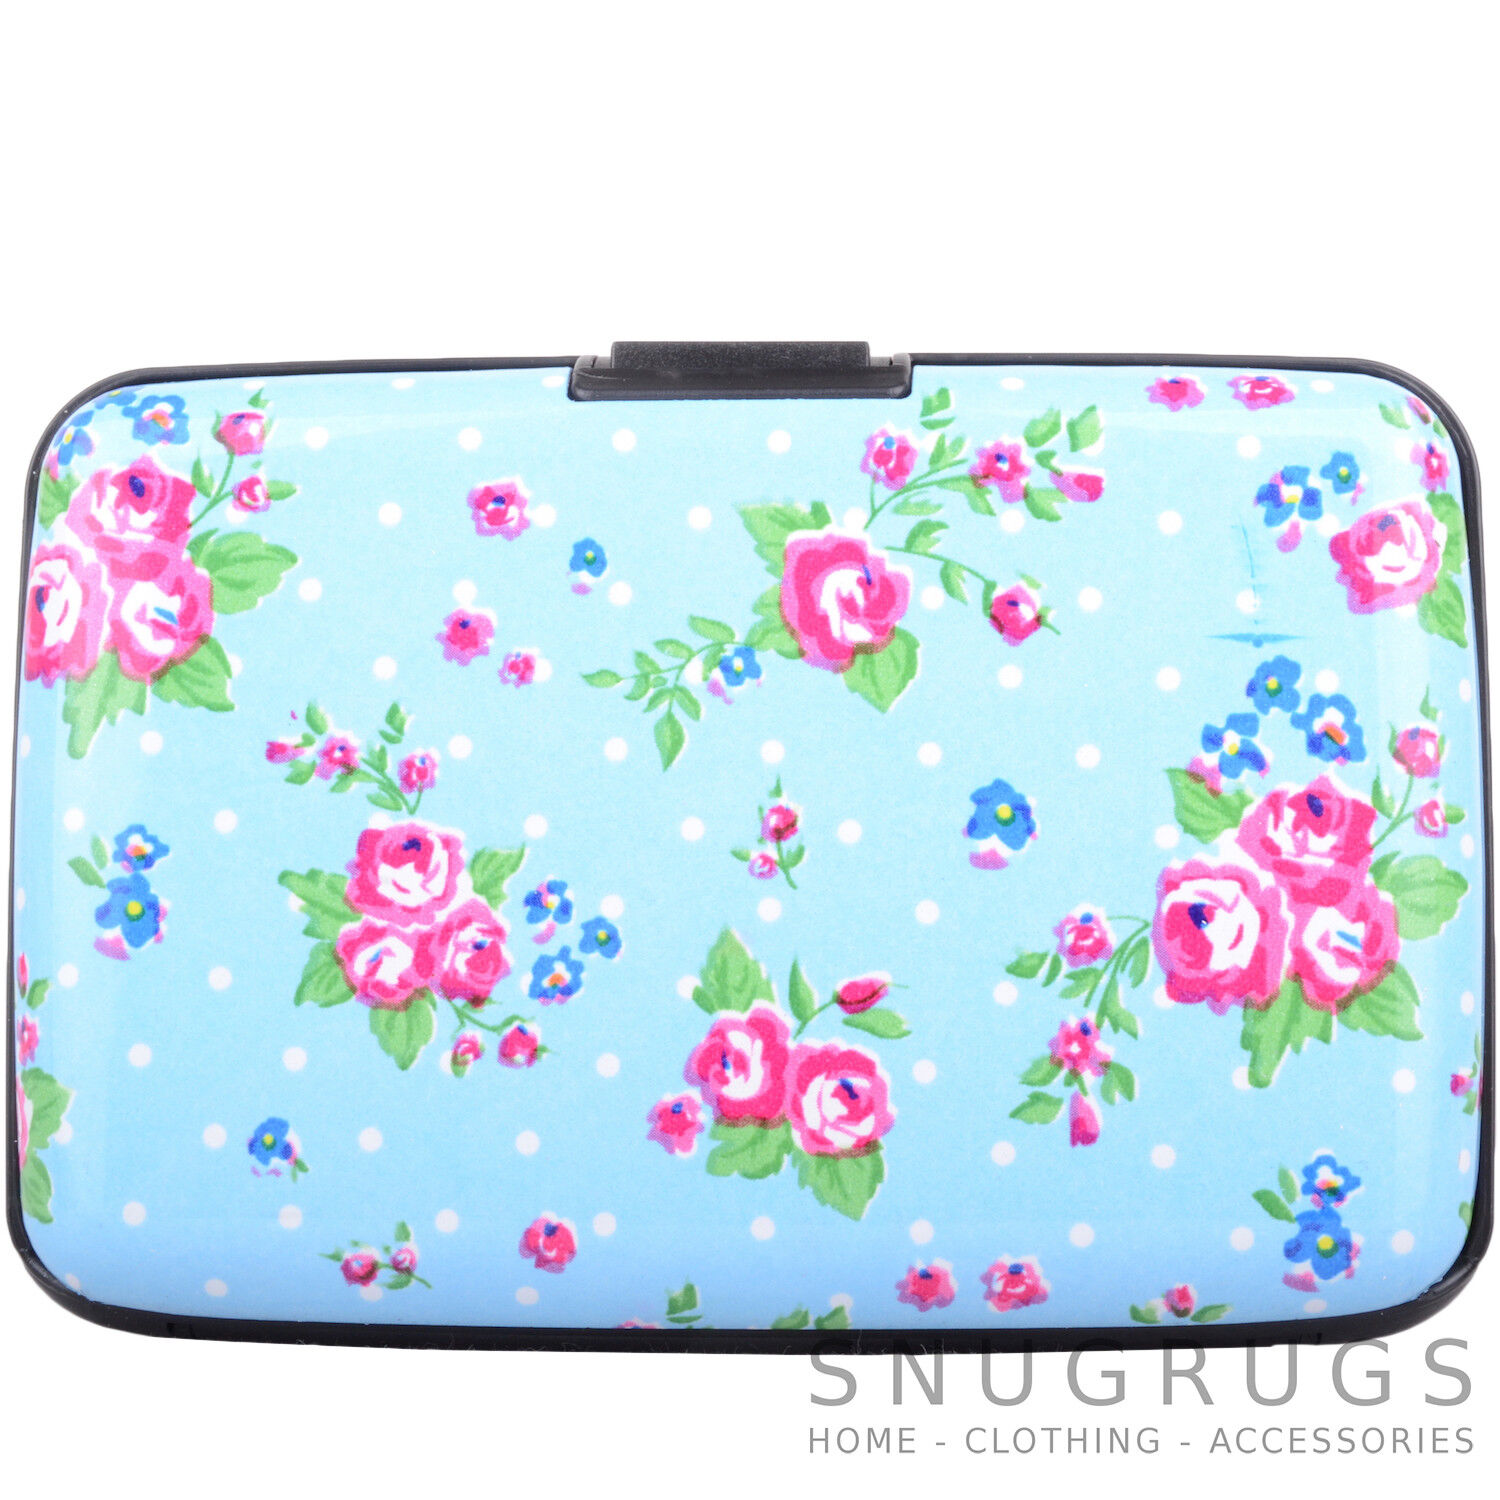 Ladies / Womens / Girls Travel / Credit Card / ID Holder / Pouch